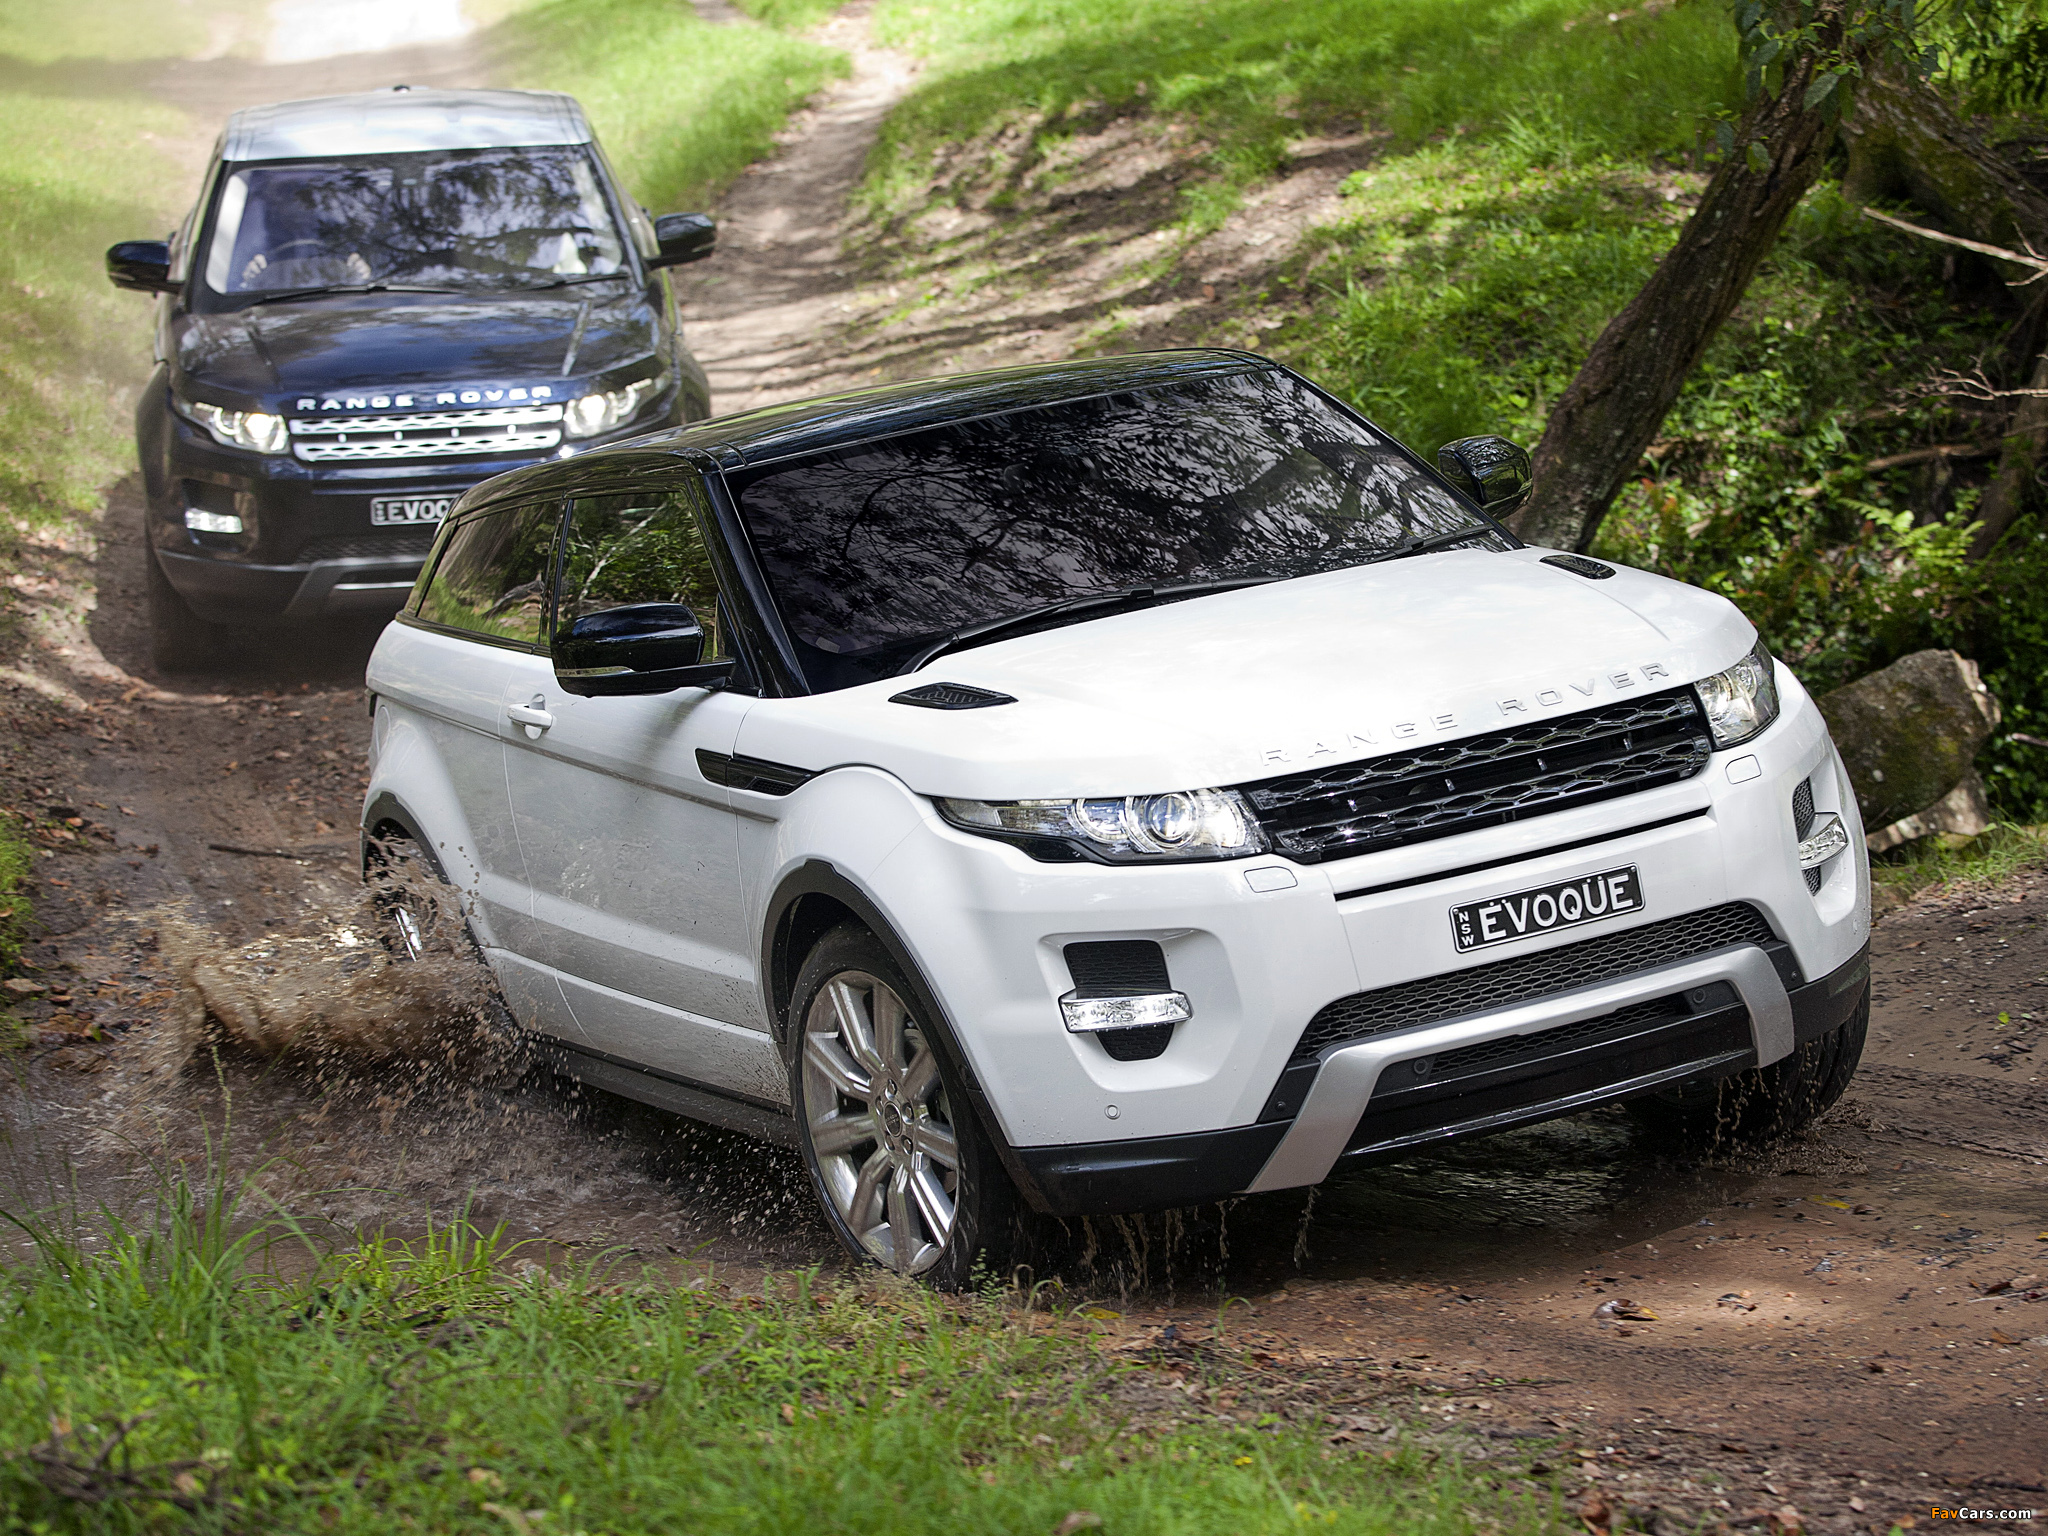 Amazing Wallpaper High Resolution Range Rover - land_rover_range_rover_evoque__wallpapers_1  Trends_5610032.jpg